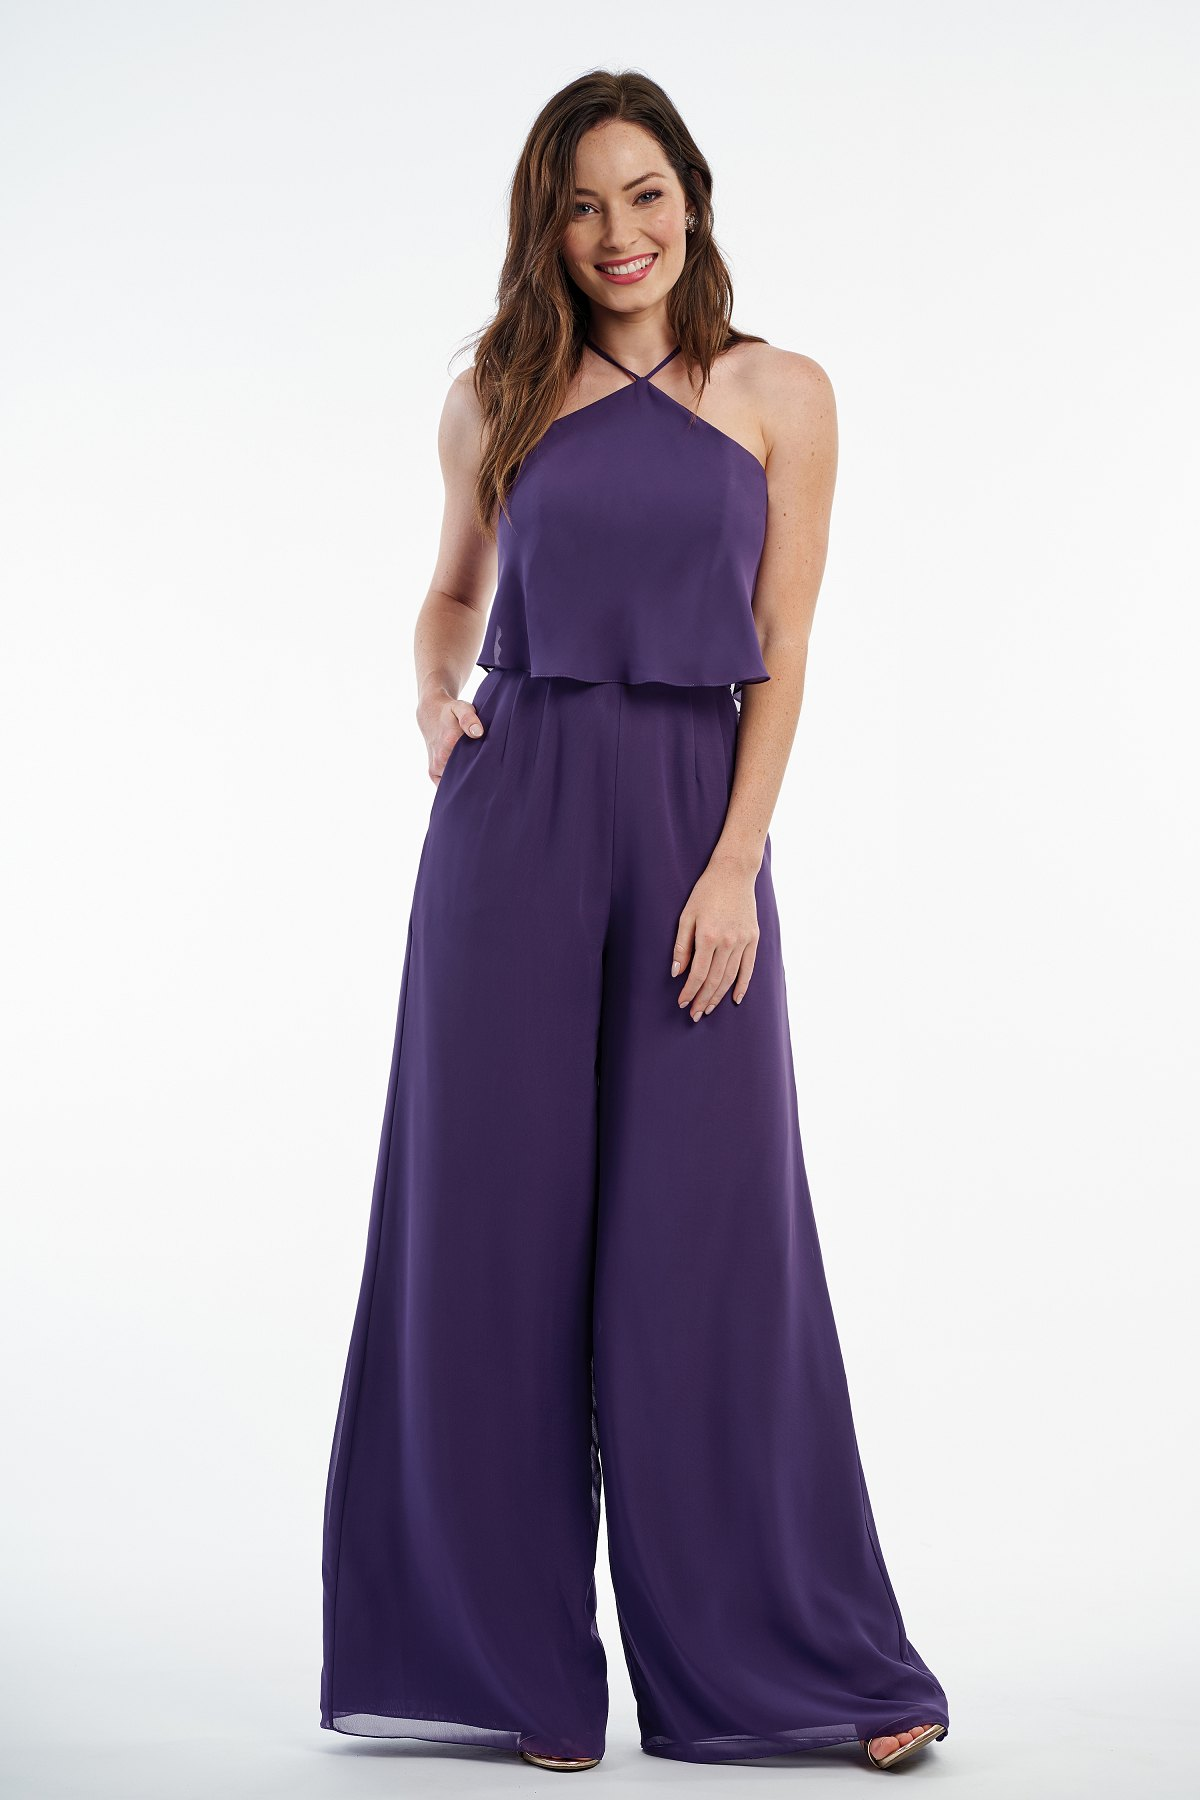 P216003 -  Beautiful charlotte chiffon long pant suit with a high neckline, layered bodice, and side pockets on the bottom to complete the look.  Special Detail: Pockets    Available in 41 colors